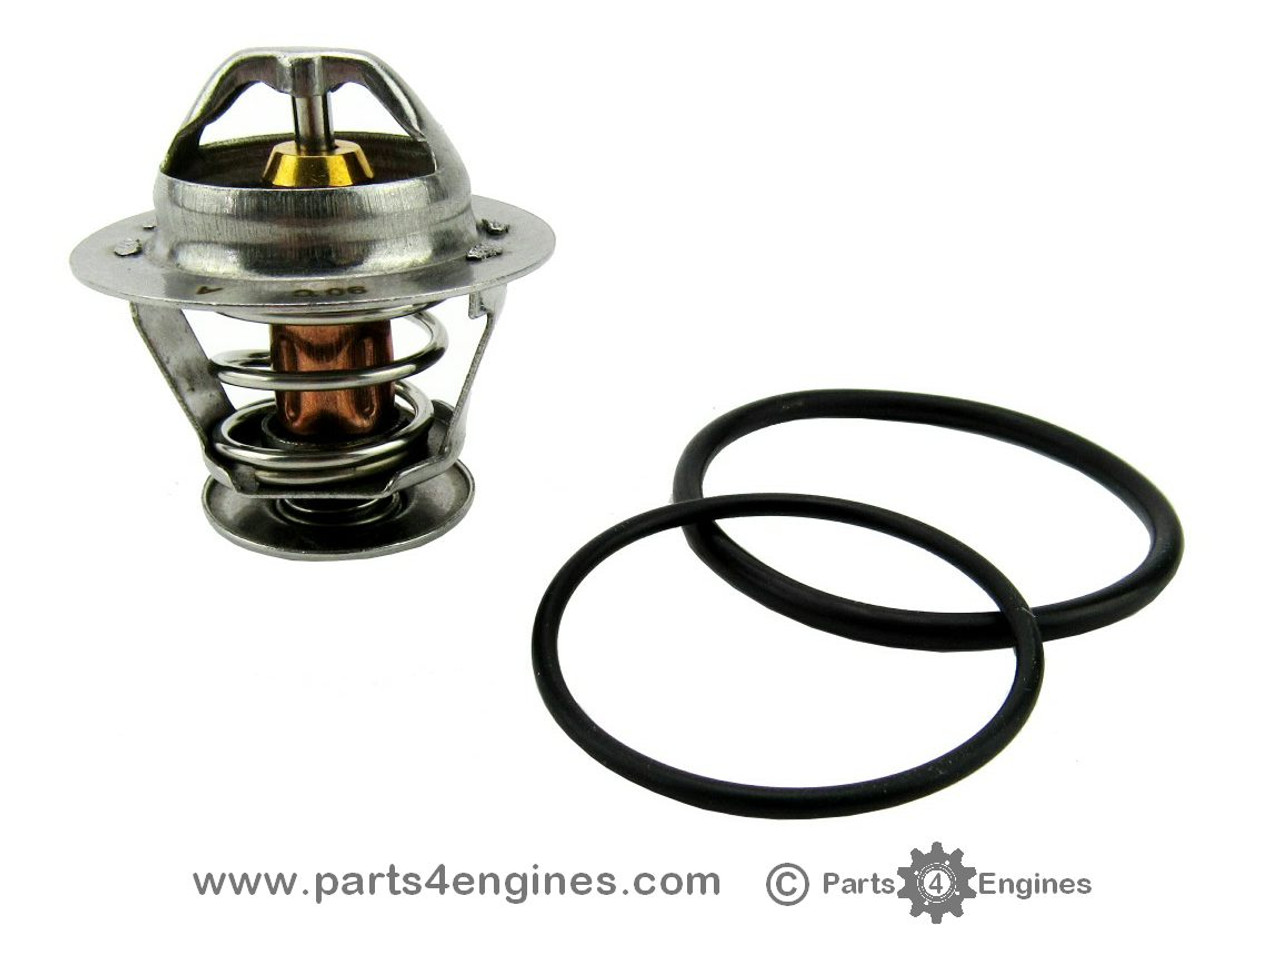 Volvo penta D2-60F Thermostat, from parts4engines